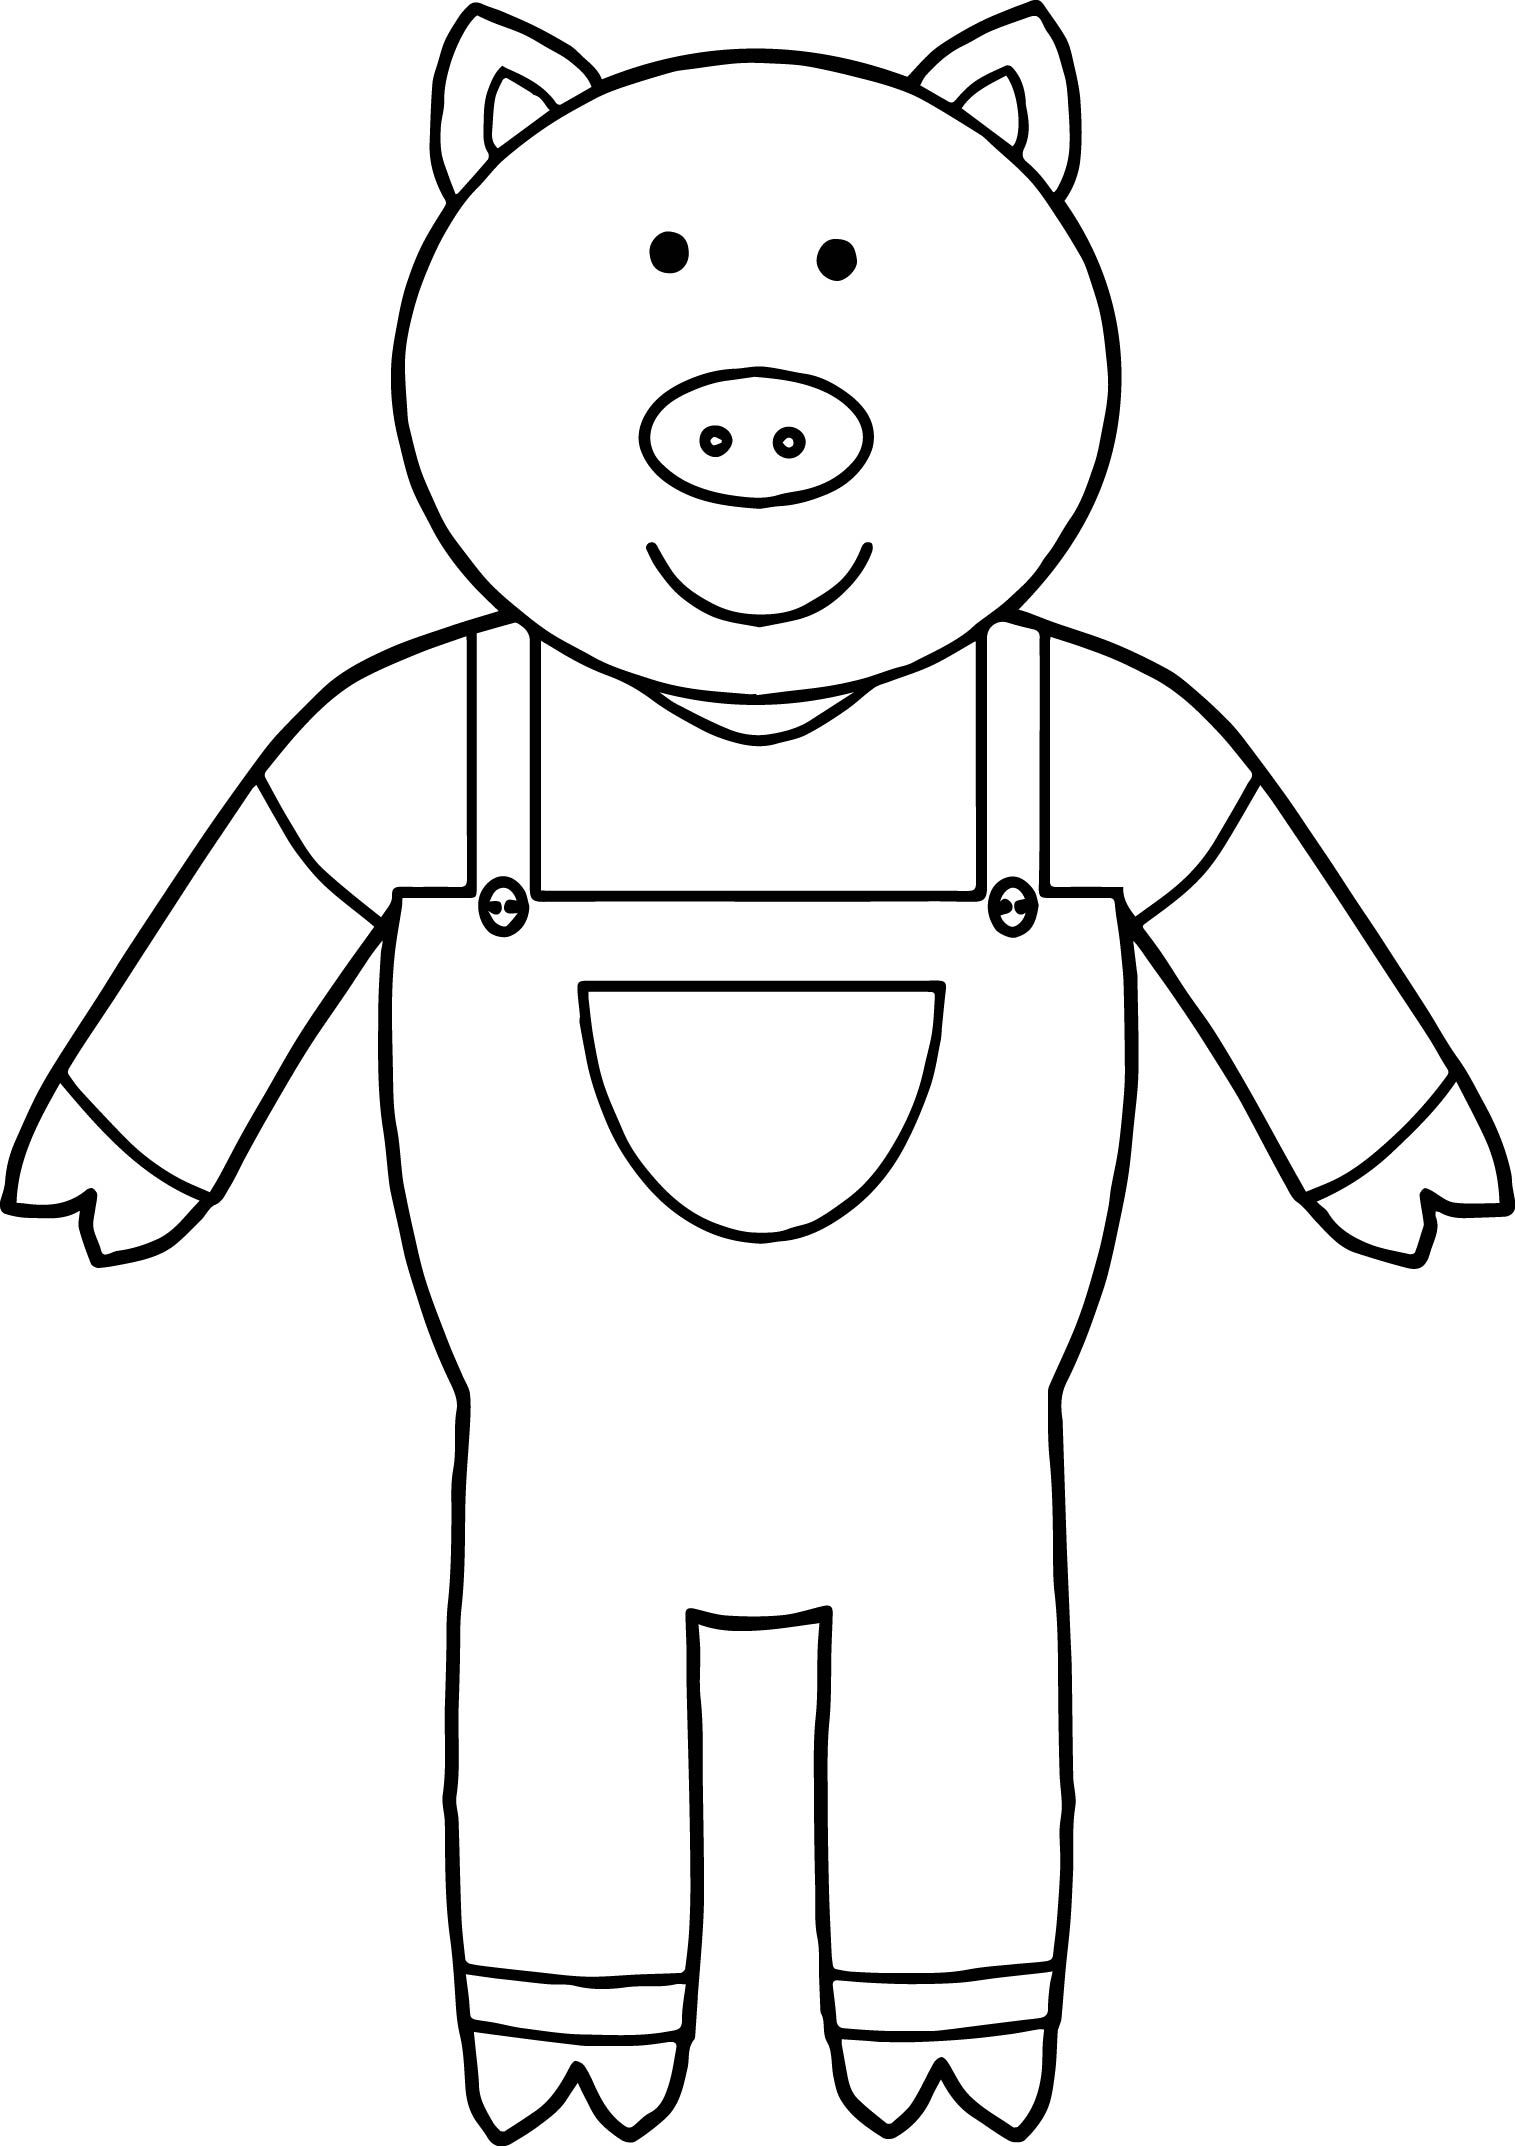 Cool One 3 Little Pigs Coloring Page